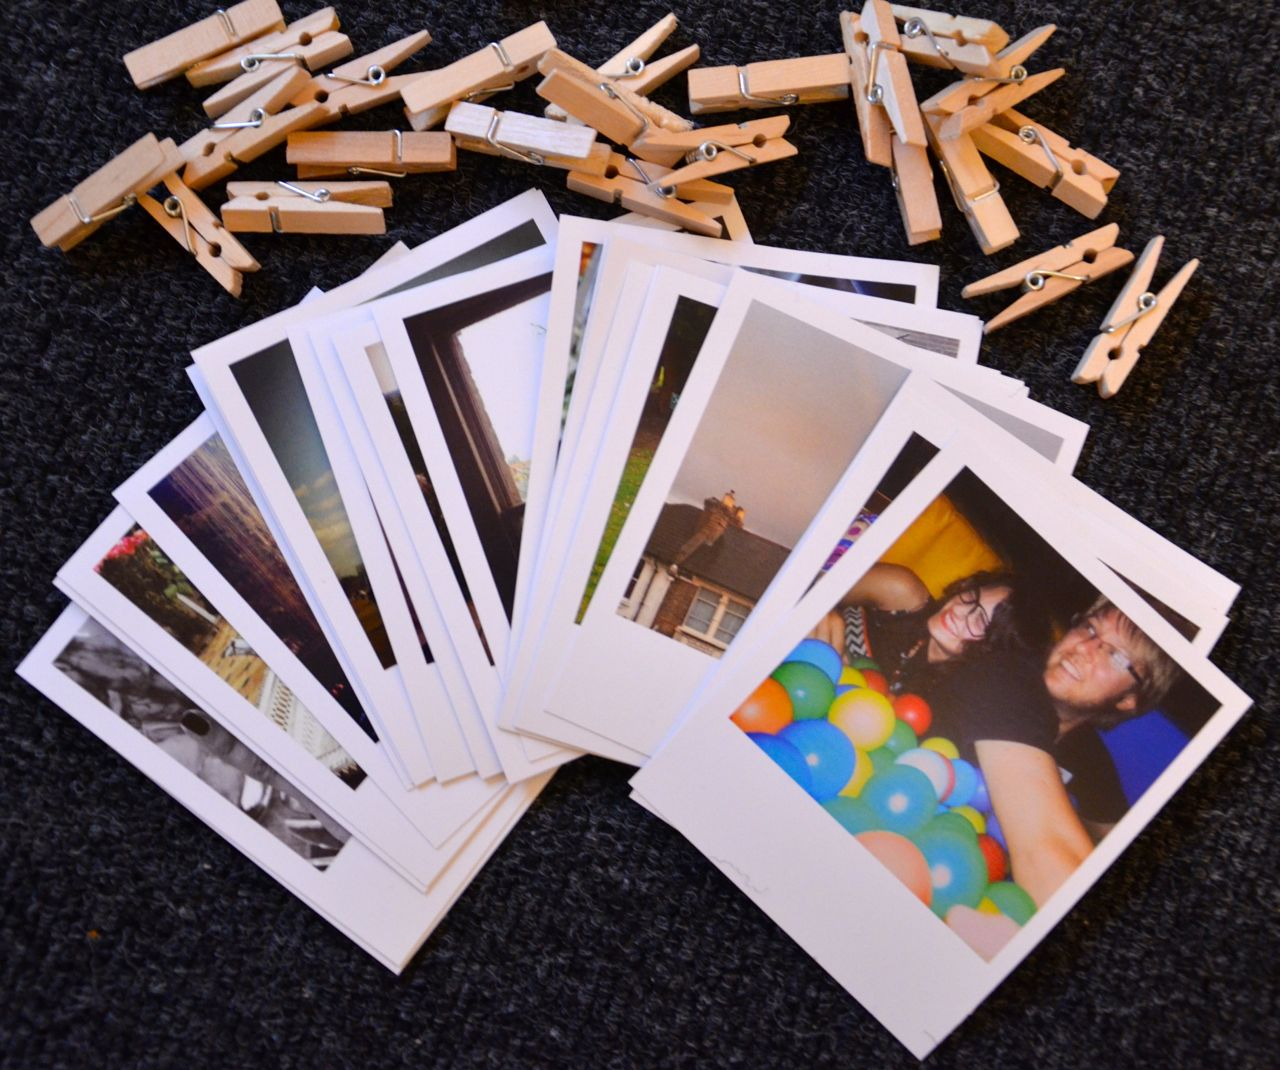 Diy pinterest inspired project for polaroid style picture - Fotos pinterest ...